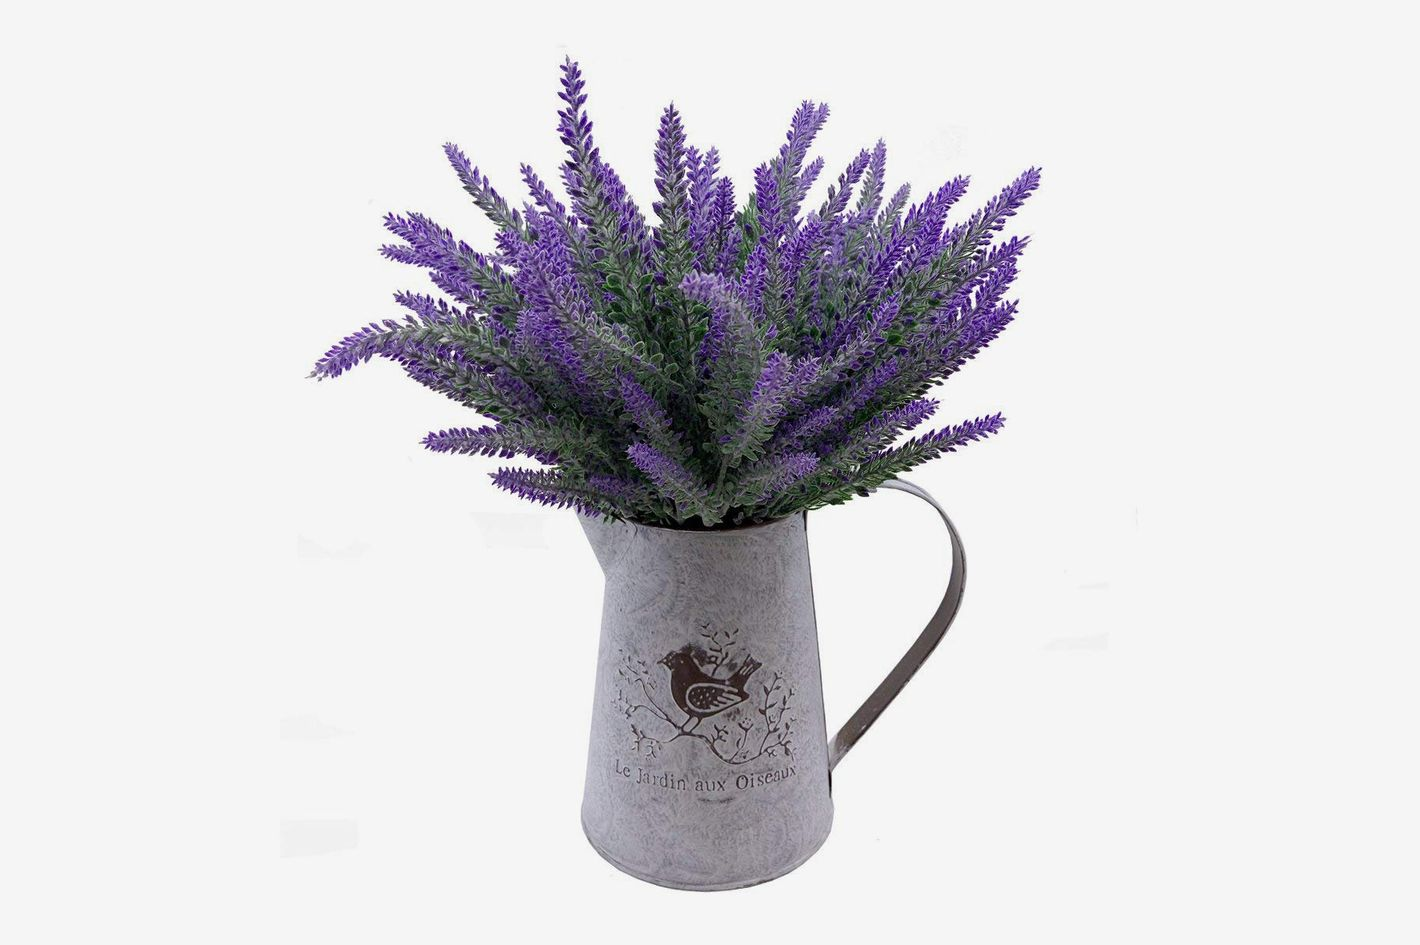 Vancore French Style Shabby Chic Vase Metal Pitcher With 6 Pcs Lavender Flowers